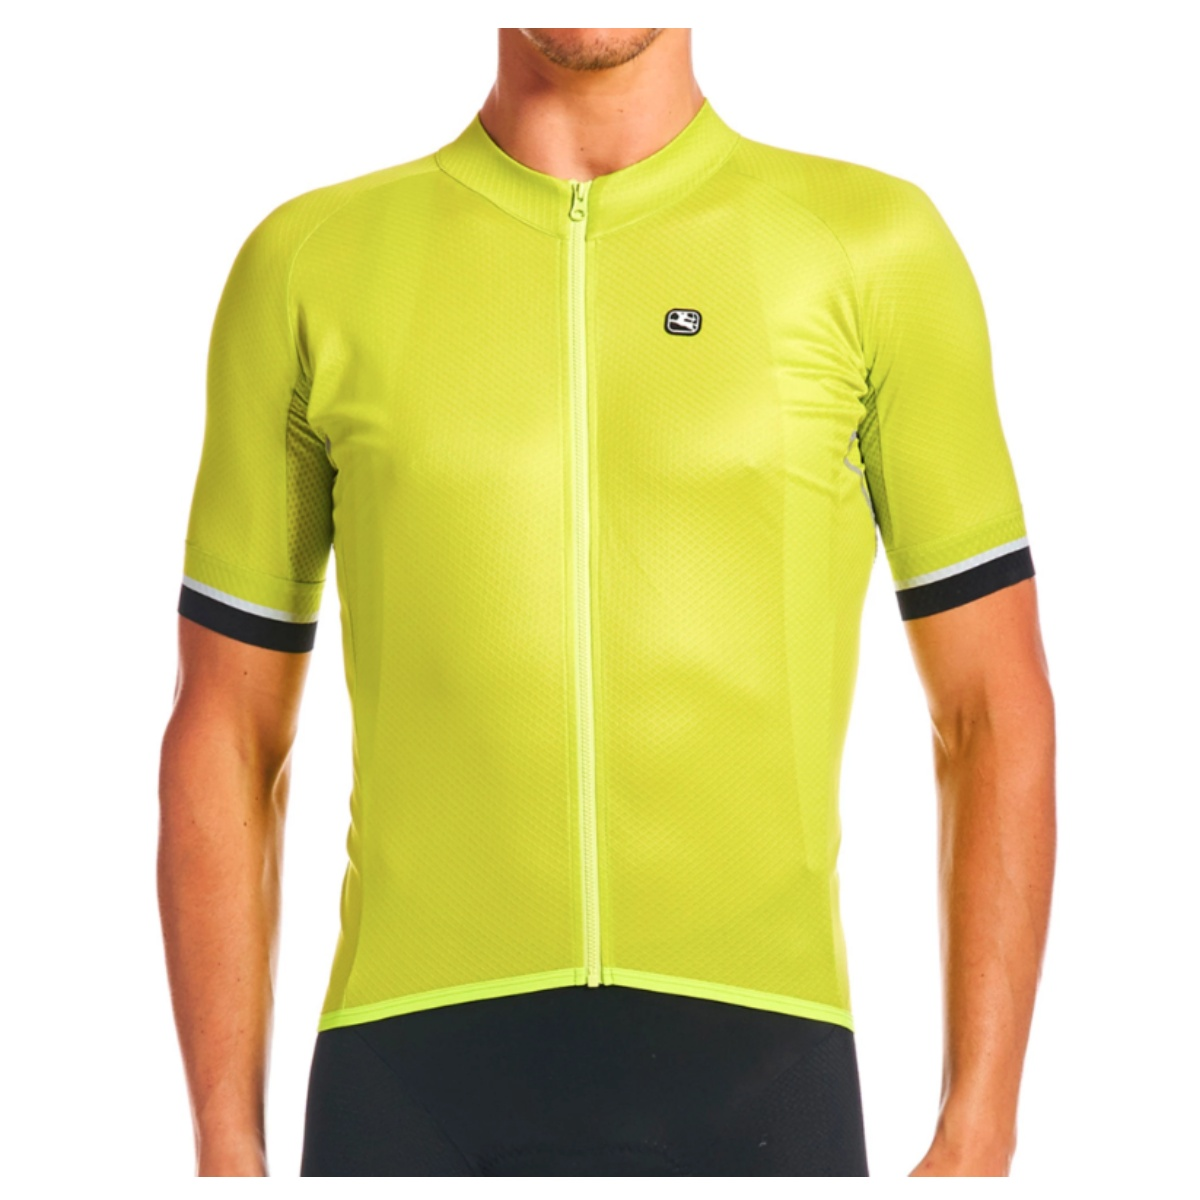 MAILLOT GIORDANA SILVERLINE LIME